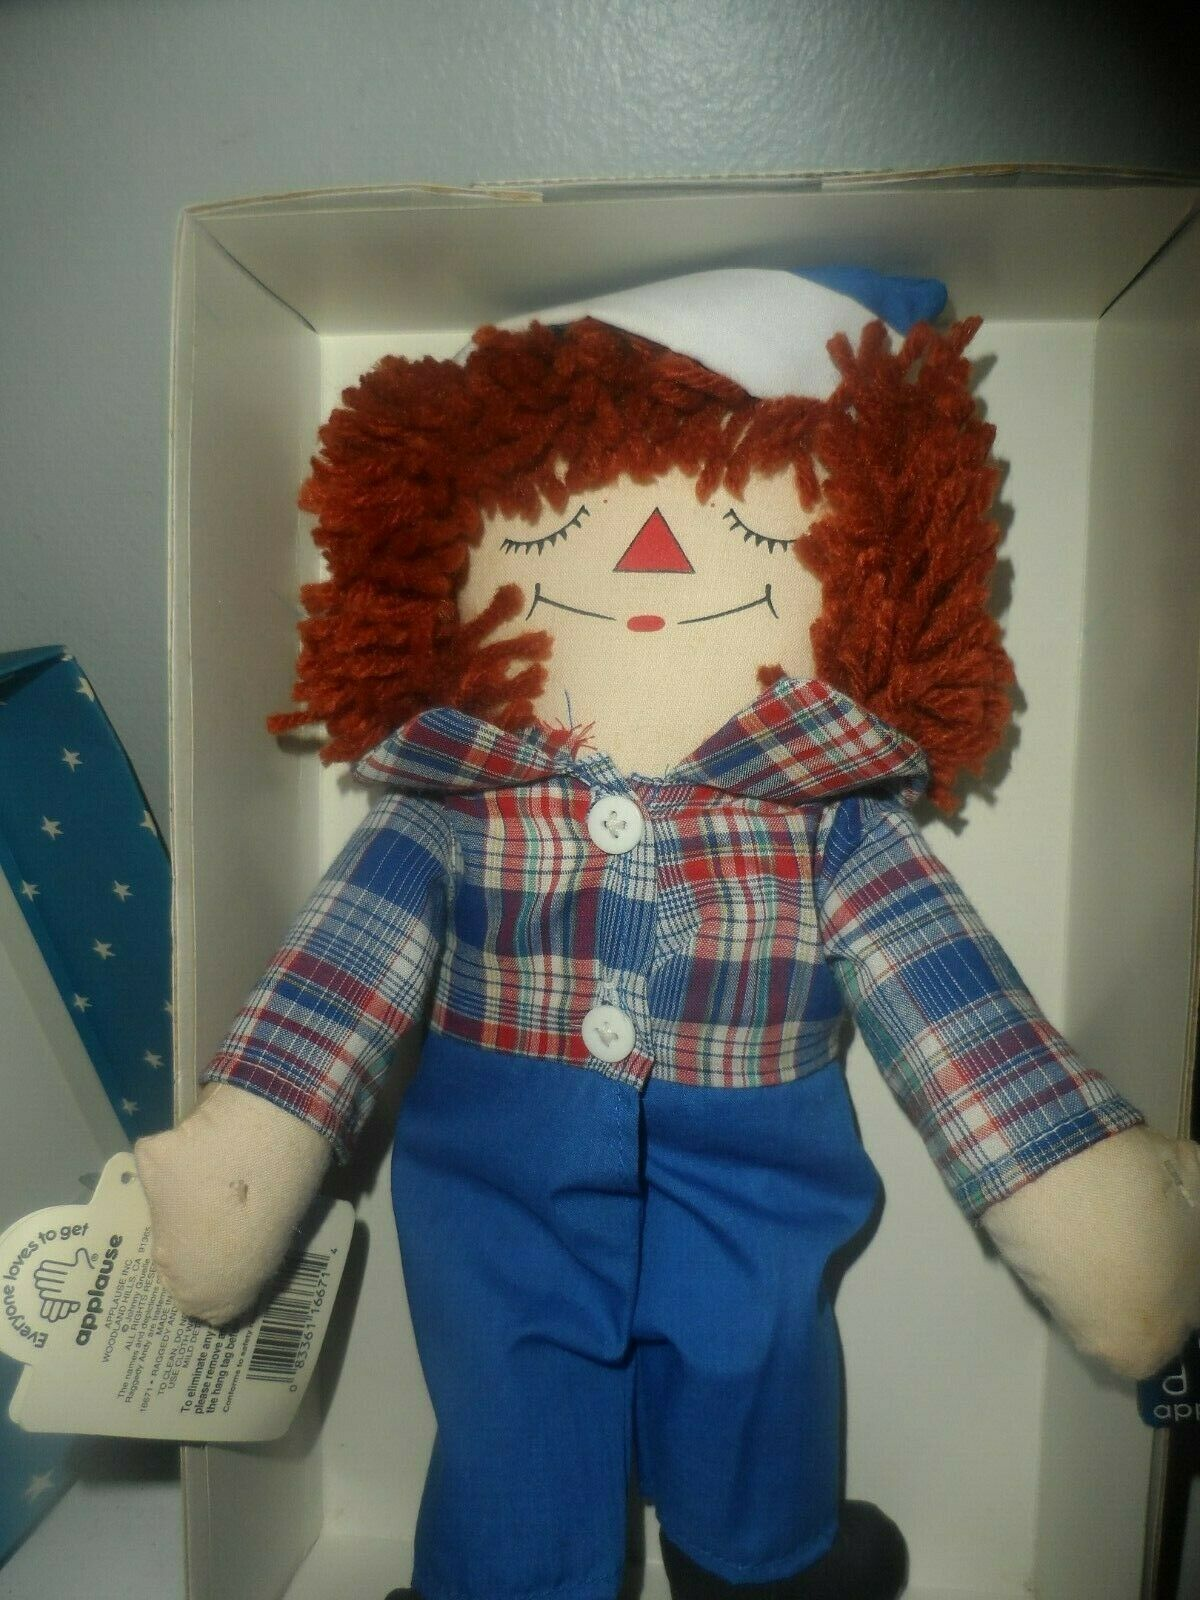 LIMITED EDITION Raggedy Andy Awake/Asleep Doll by Applause image 2